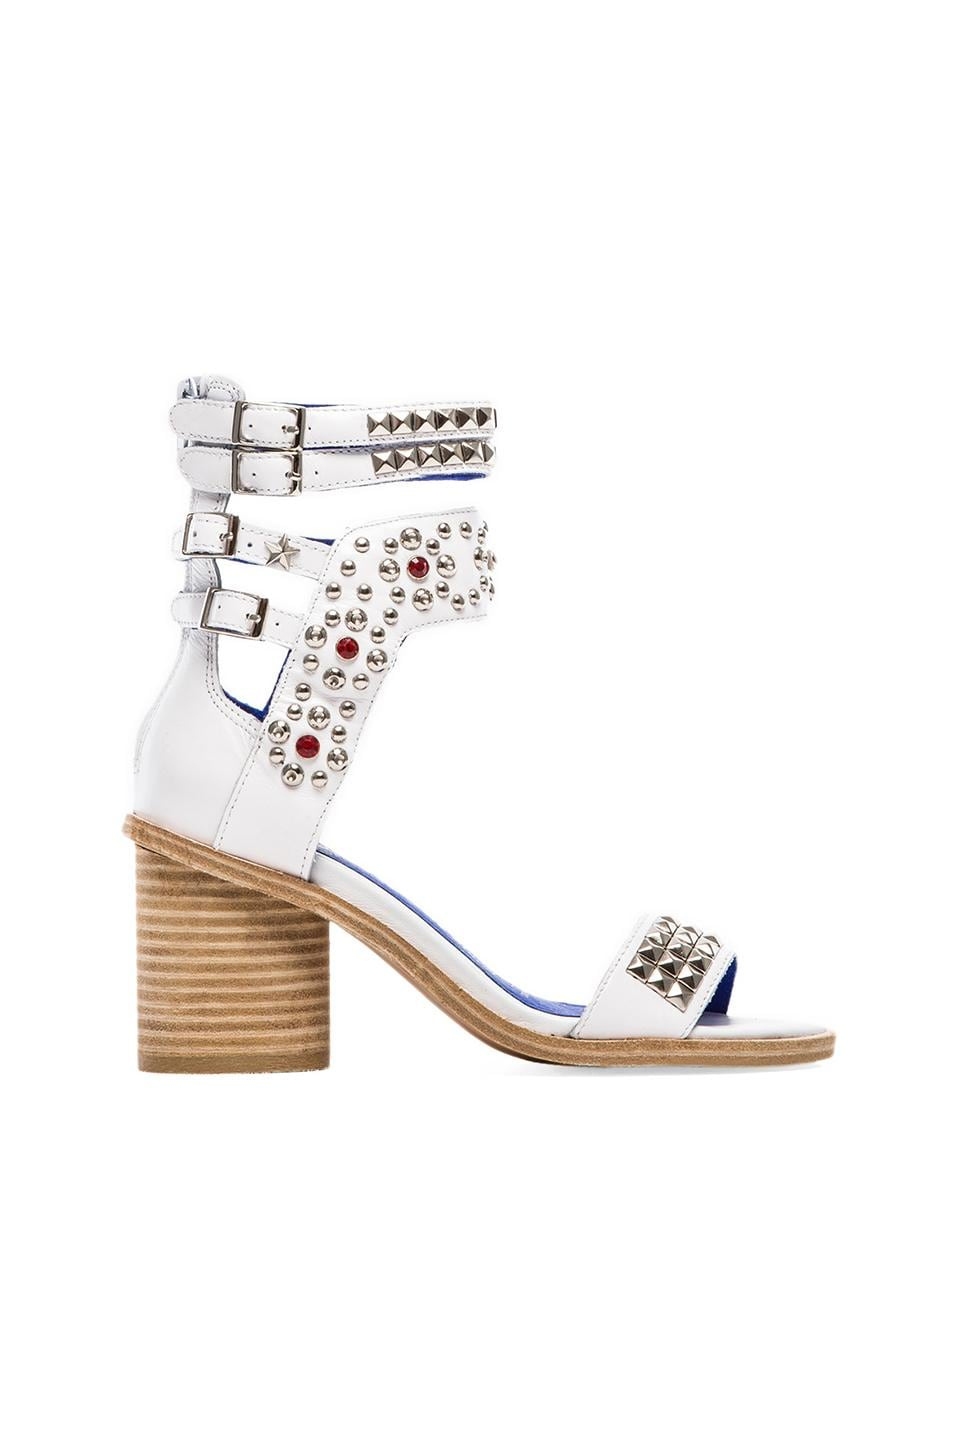 Jeffrey Campbell Tamaya Embellished Sandal in White & Silver